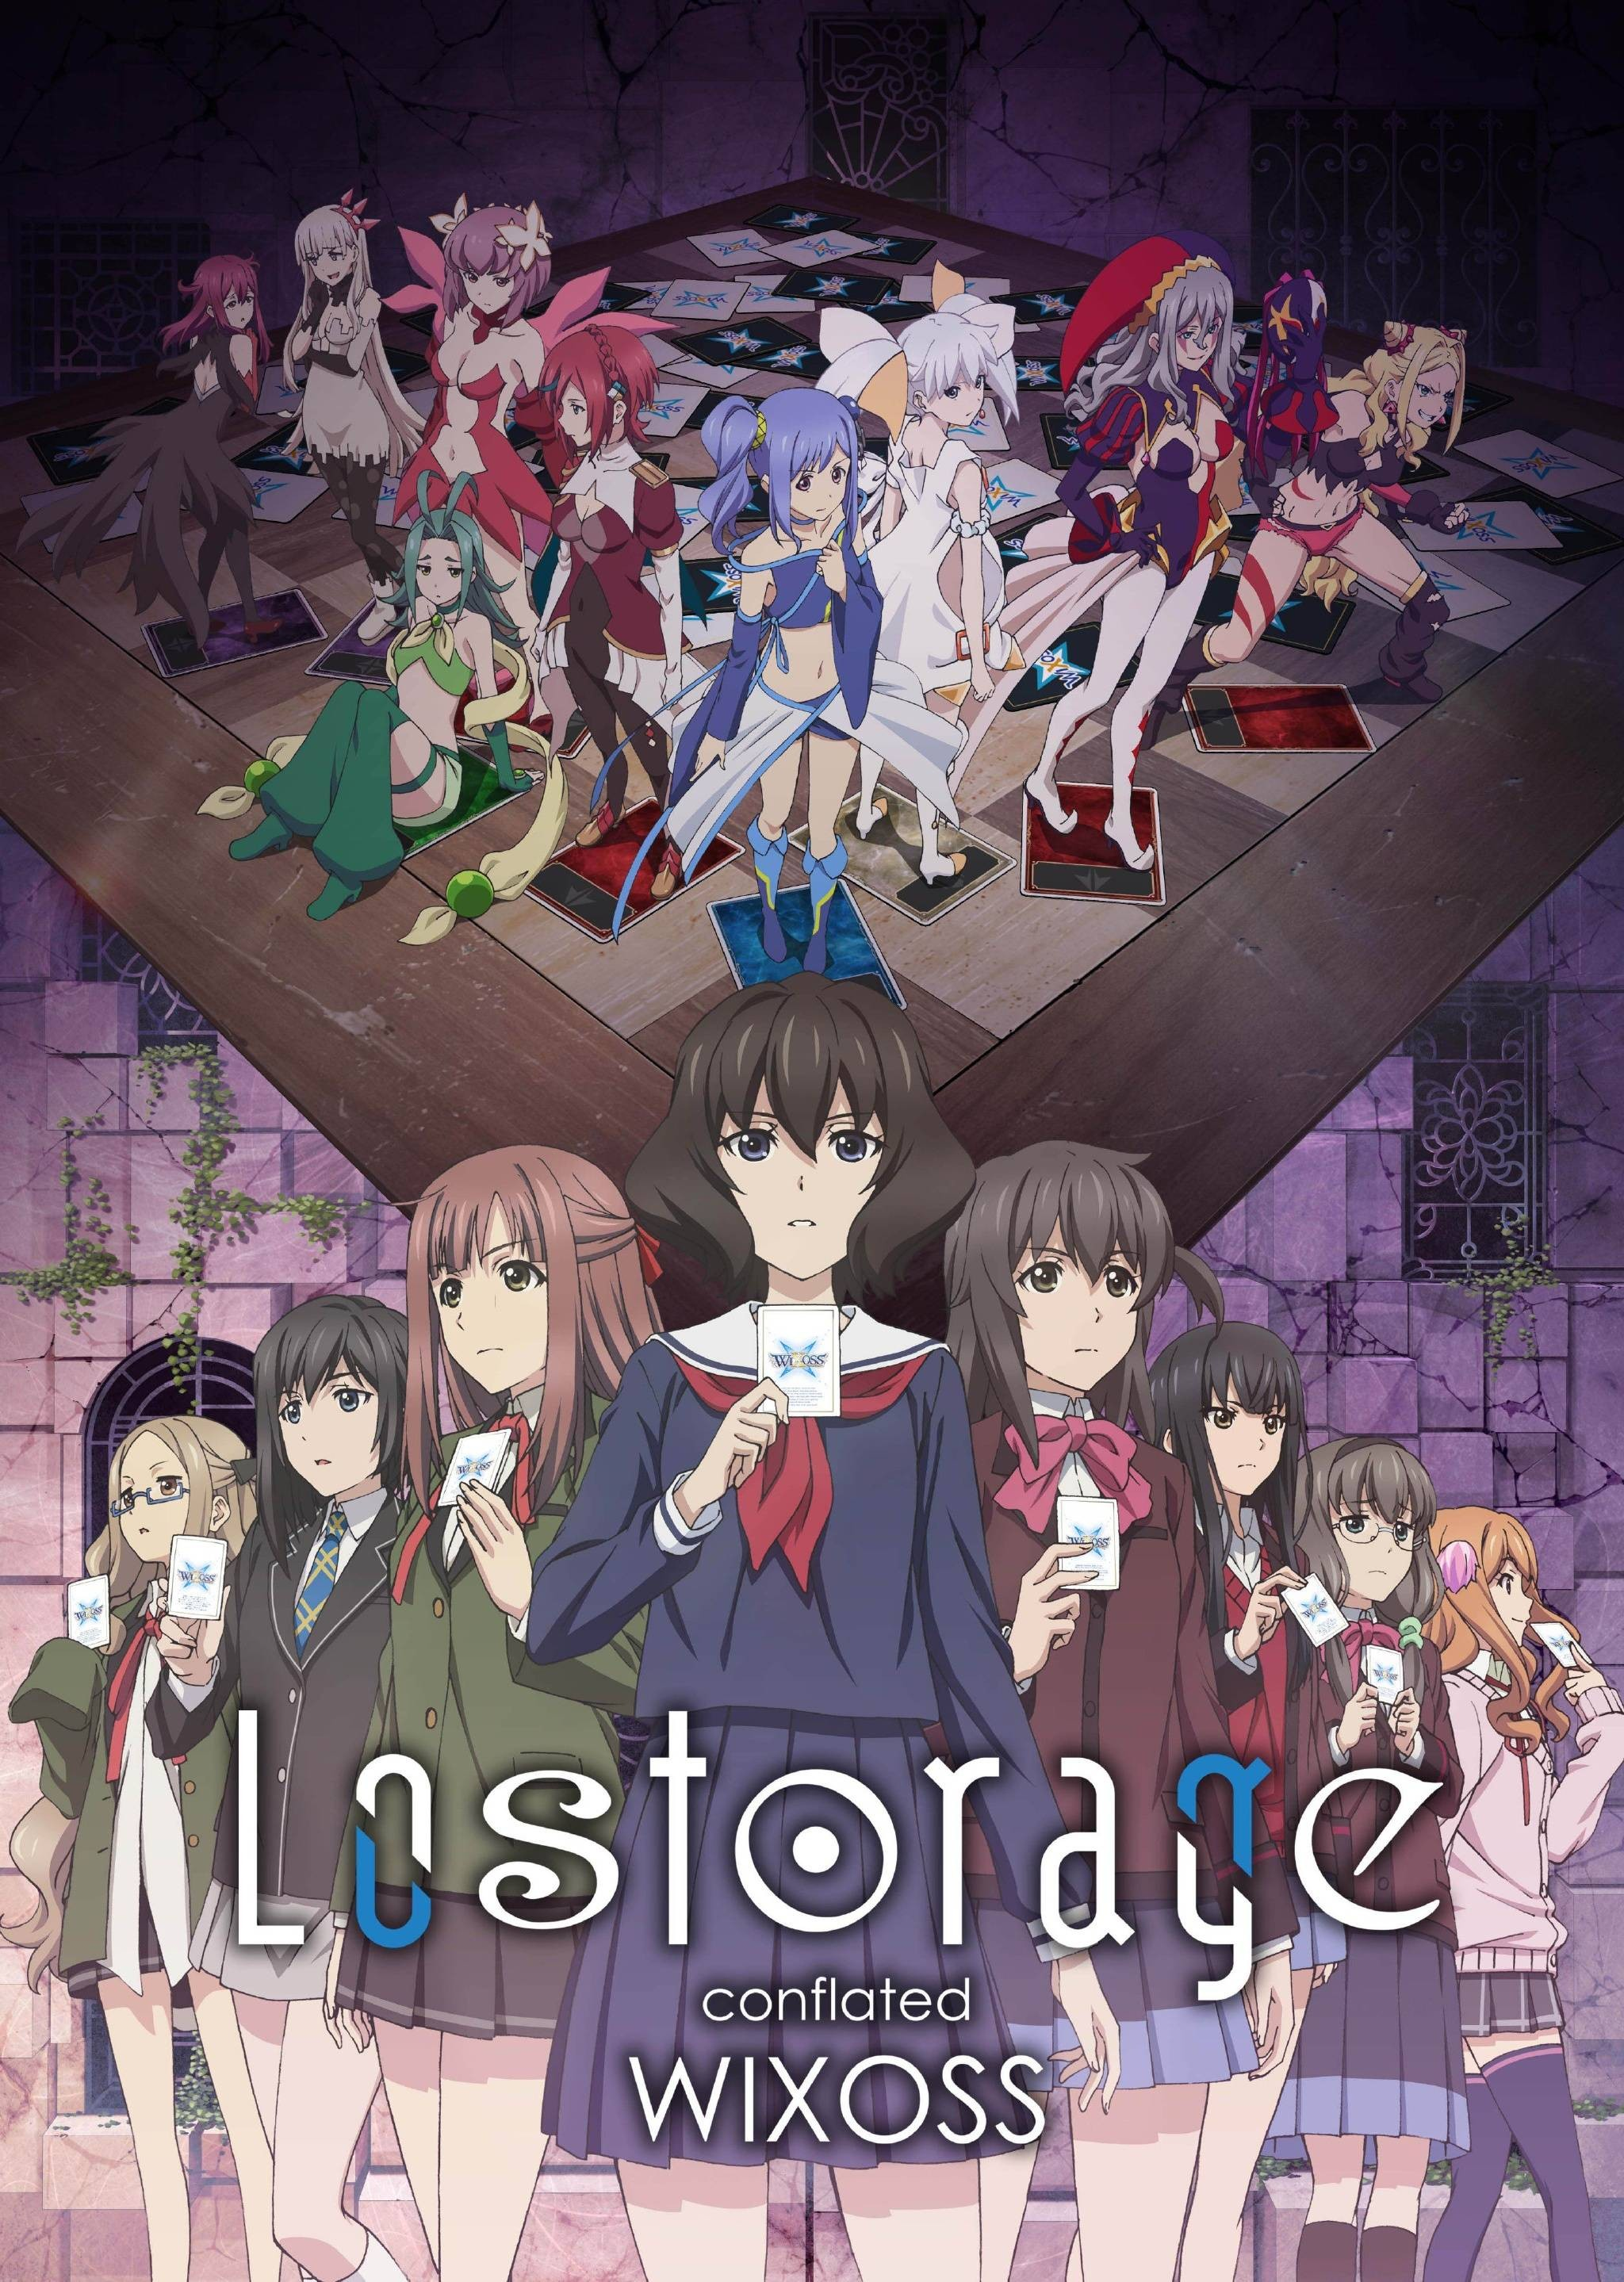 Lostorage conflated WIXOSS 失忆融合WIXOSS